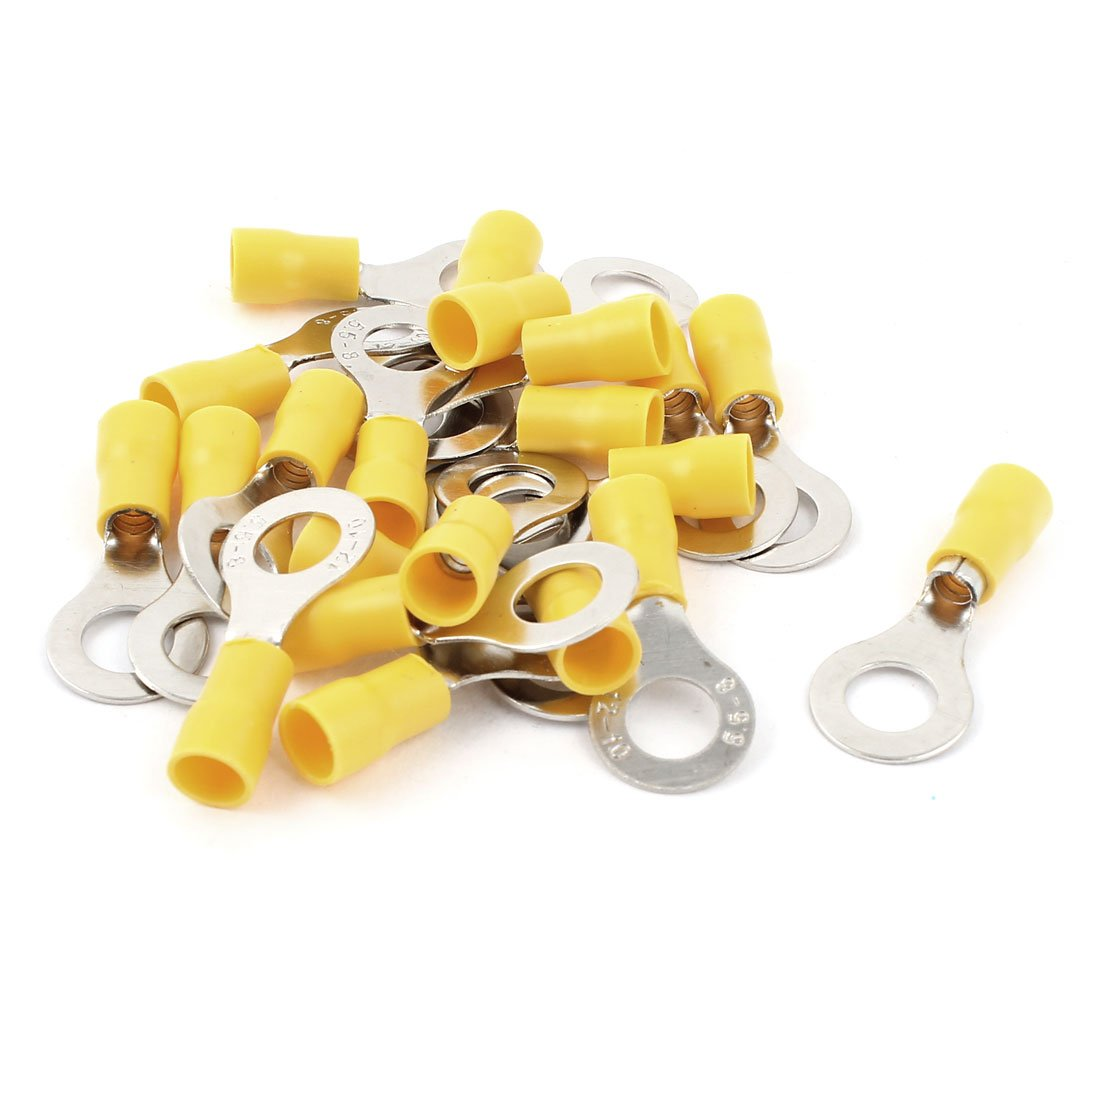 Sourcingmap 20 Pcs RV5.5-8 Yellow Pre Insulated Ring Terminals for AWG 12-10 Wire a14121700ux0683